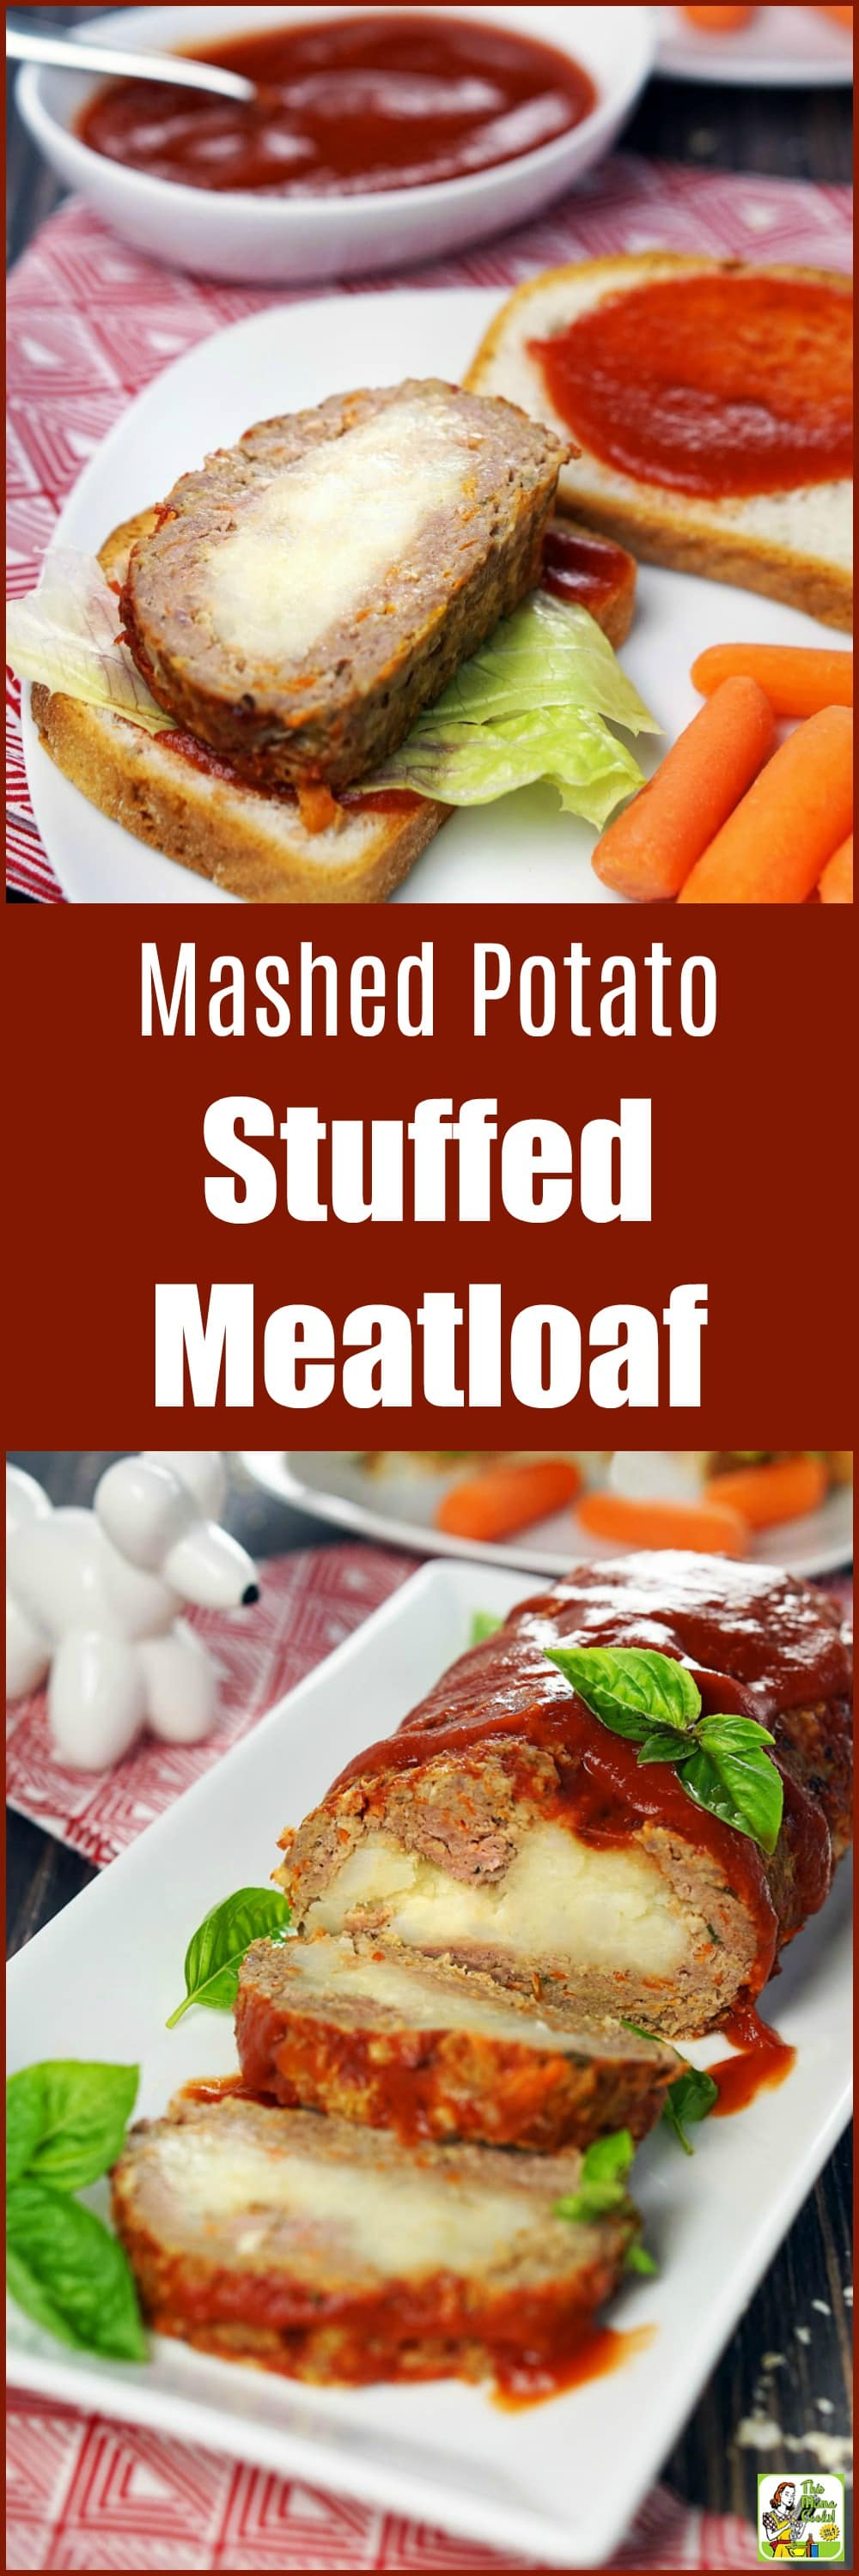 A stuffed meatloaf recipe everyone will love. Learn how to make this easy meatloaf recipe. It\'s so delicious you won\'t believe it\'s a gluten-free meatloaf. #recipes #easy #recipeoftheday #glutenfree #easyrecipe #easyrecipes #glutenfreerecipes #dinner #easydinner #dinnerrecipes #dinnerideas #meatloaf